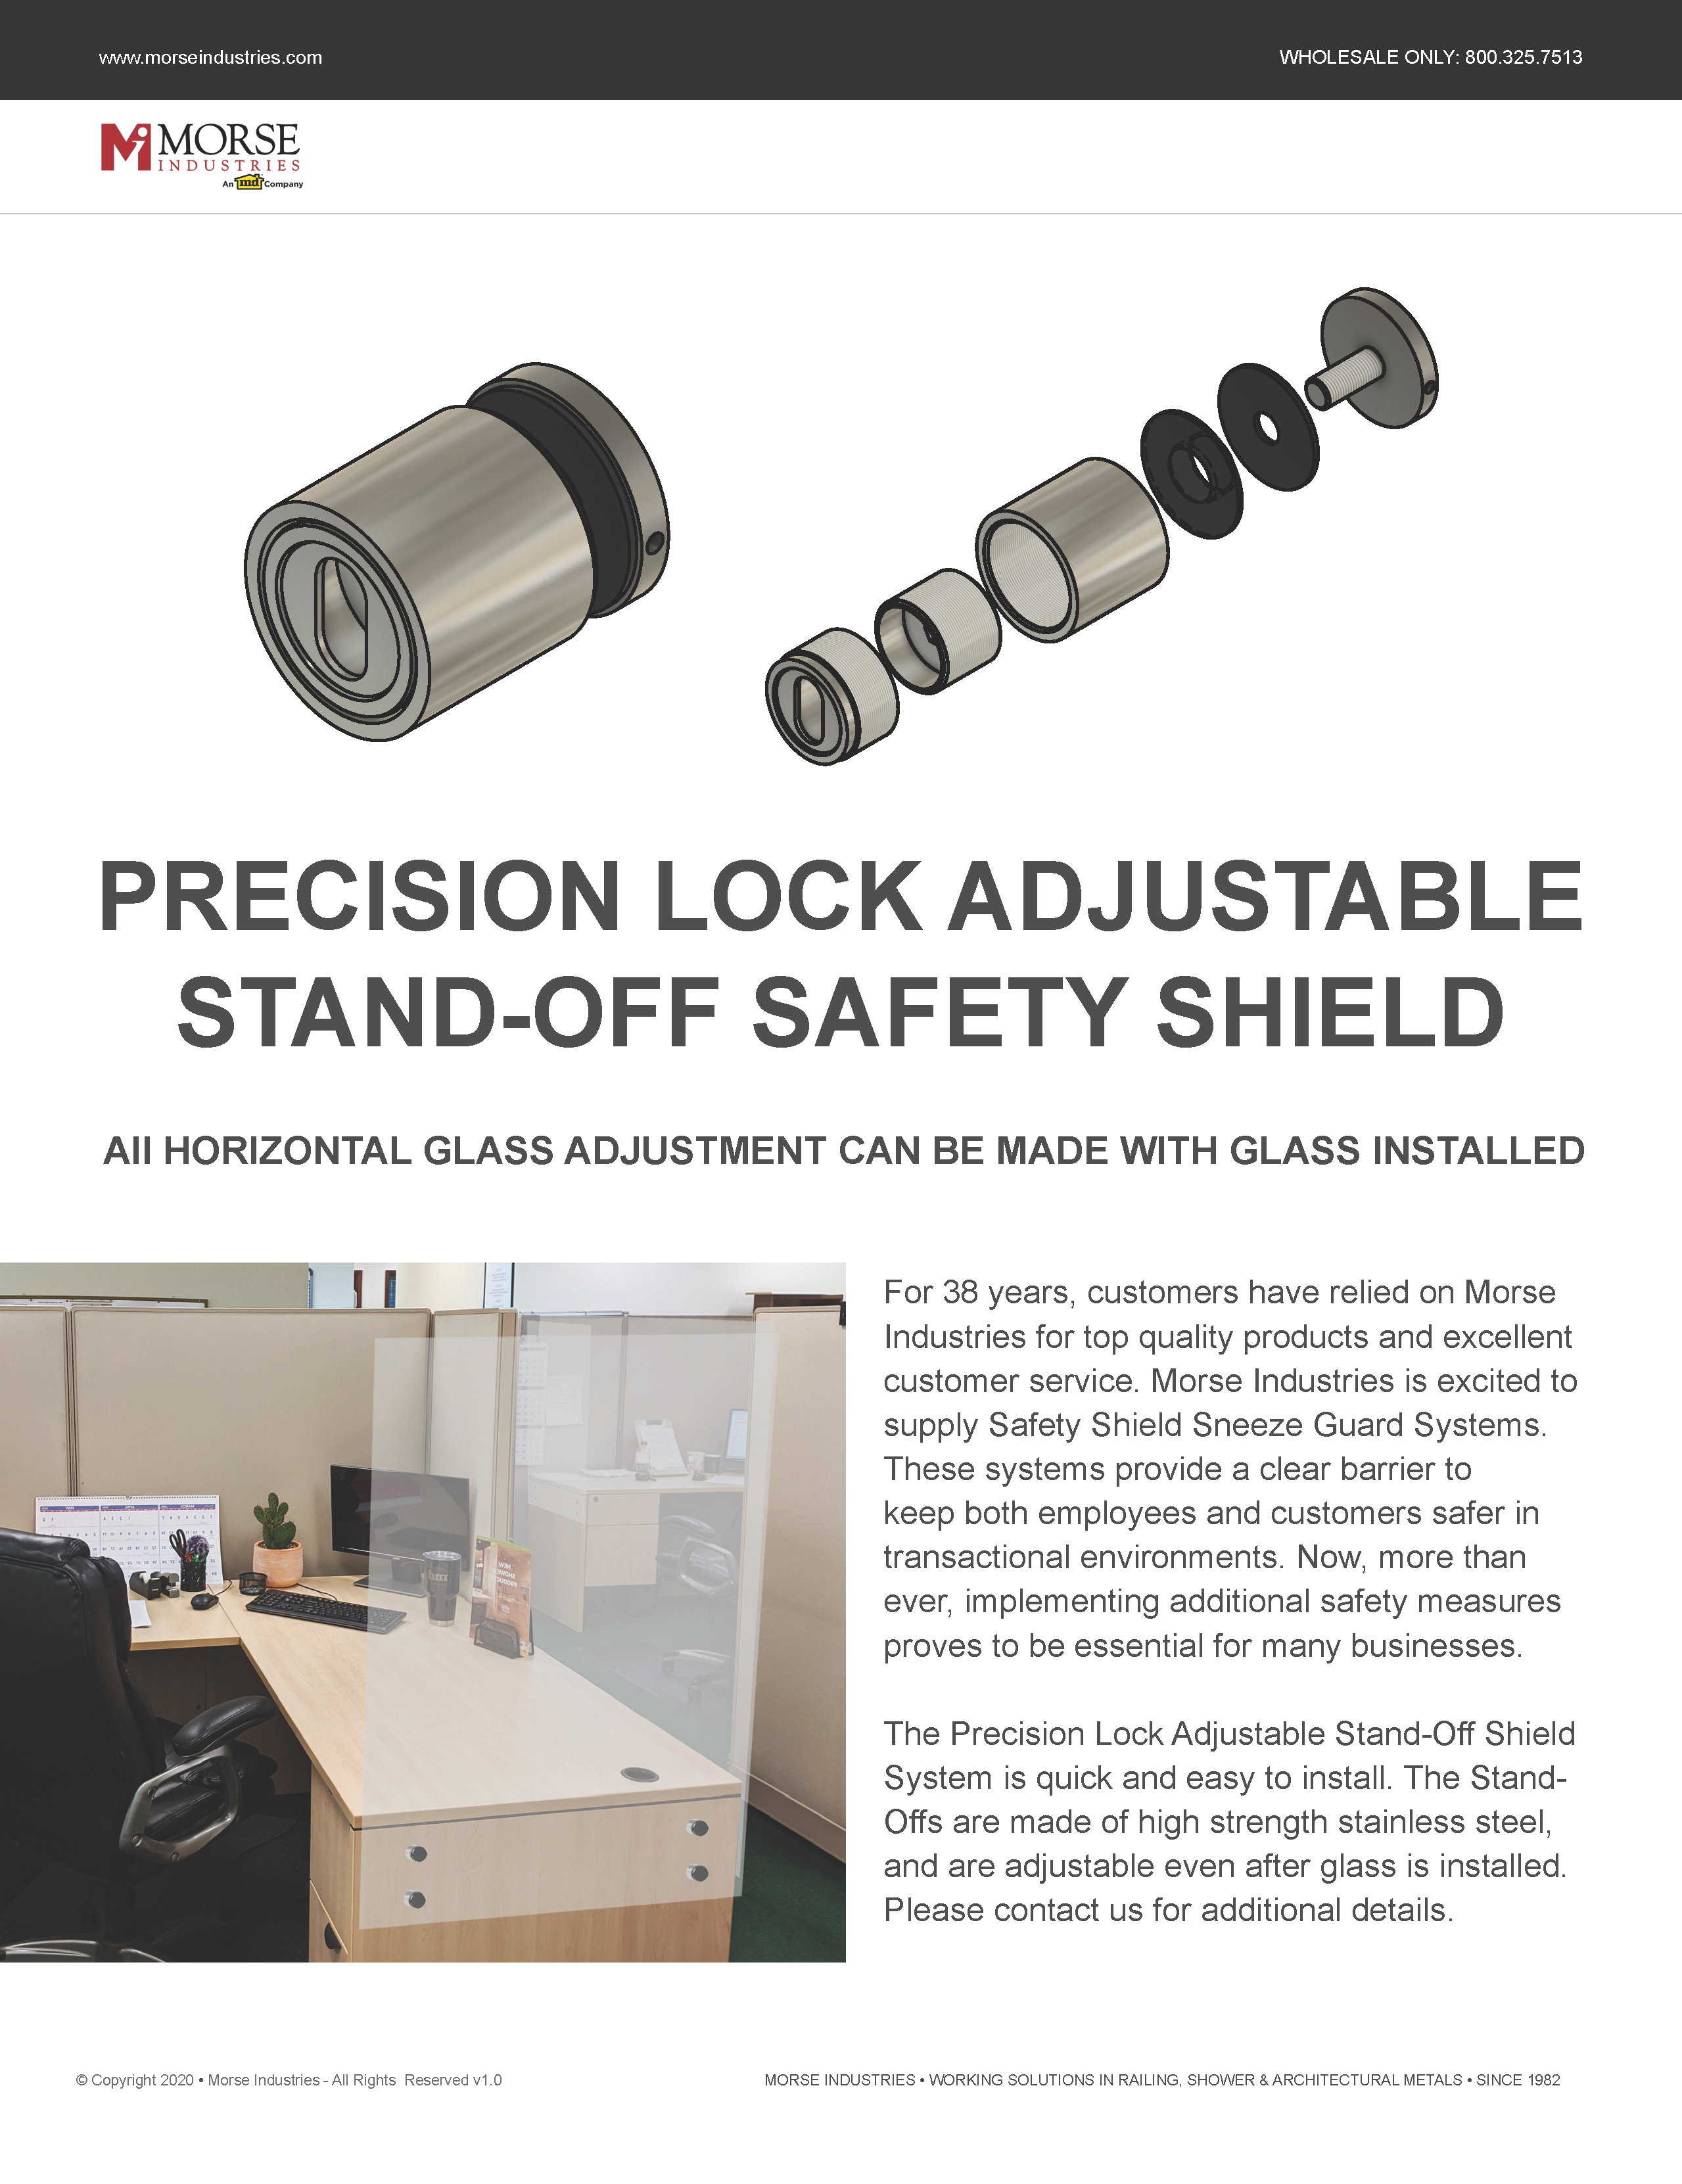 Adjustable Stand-Off Safety Shield